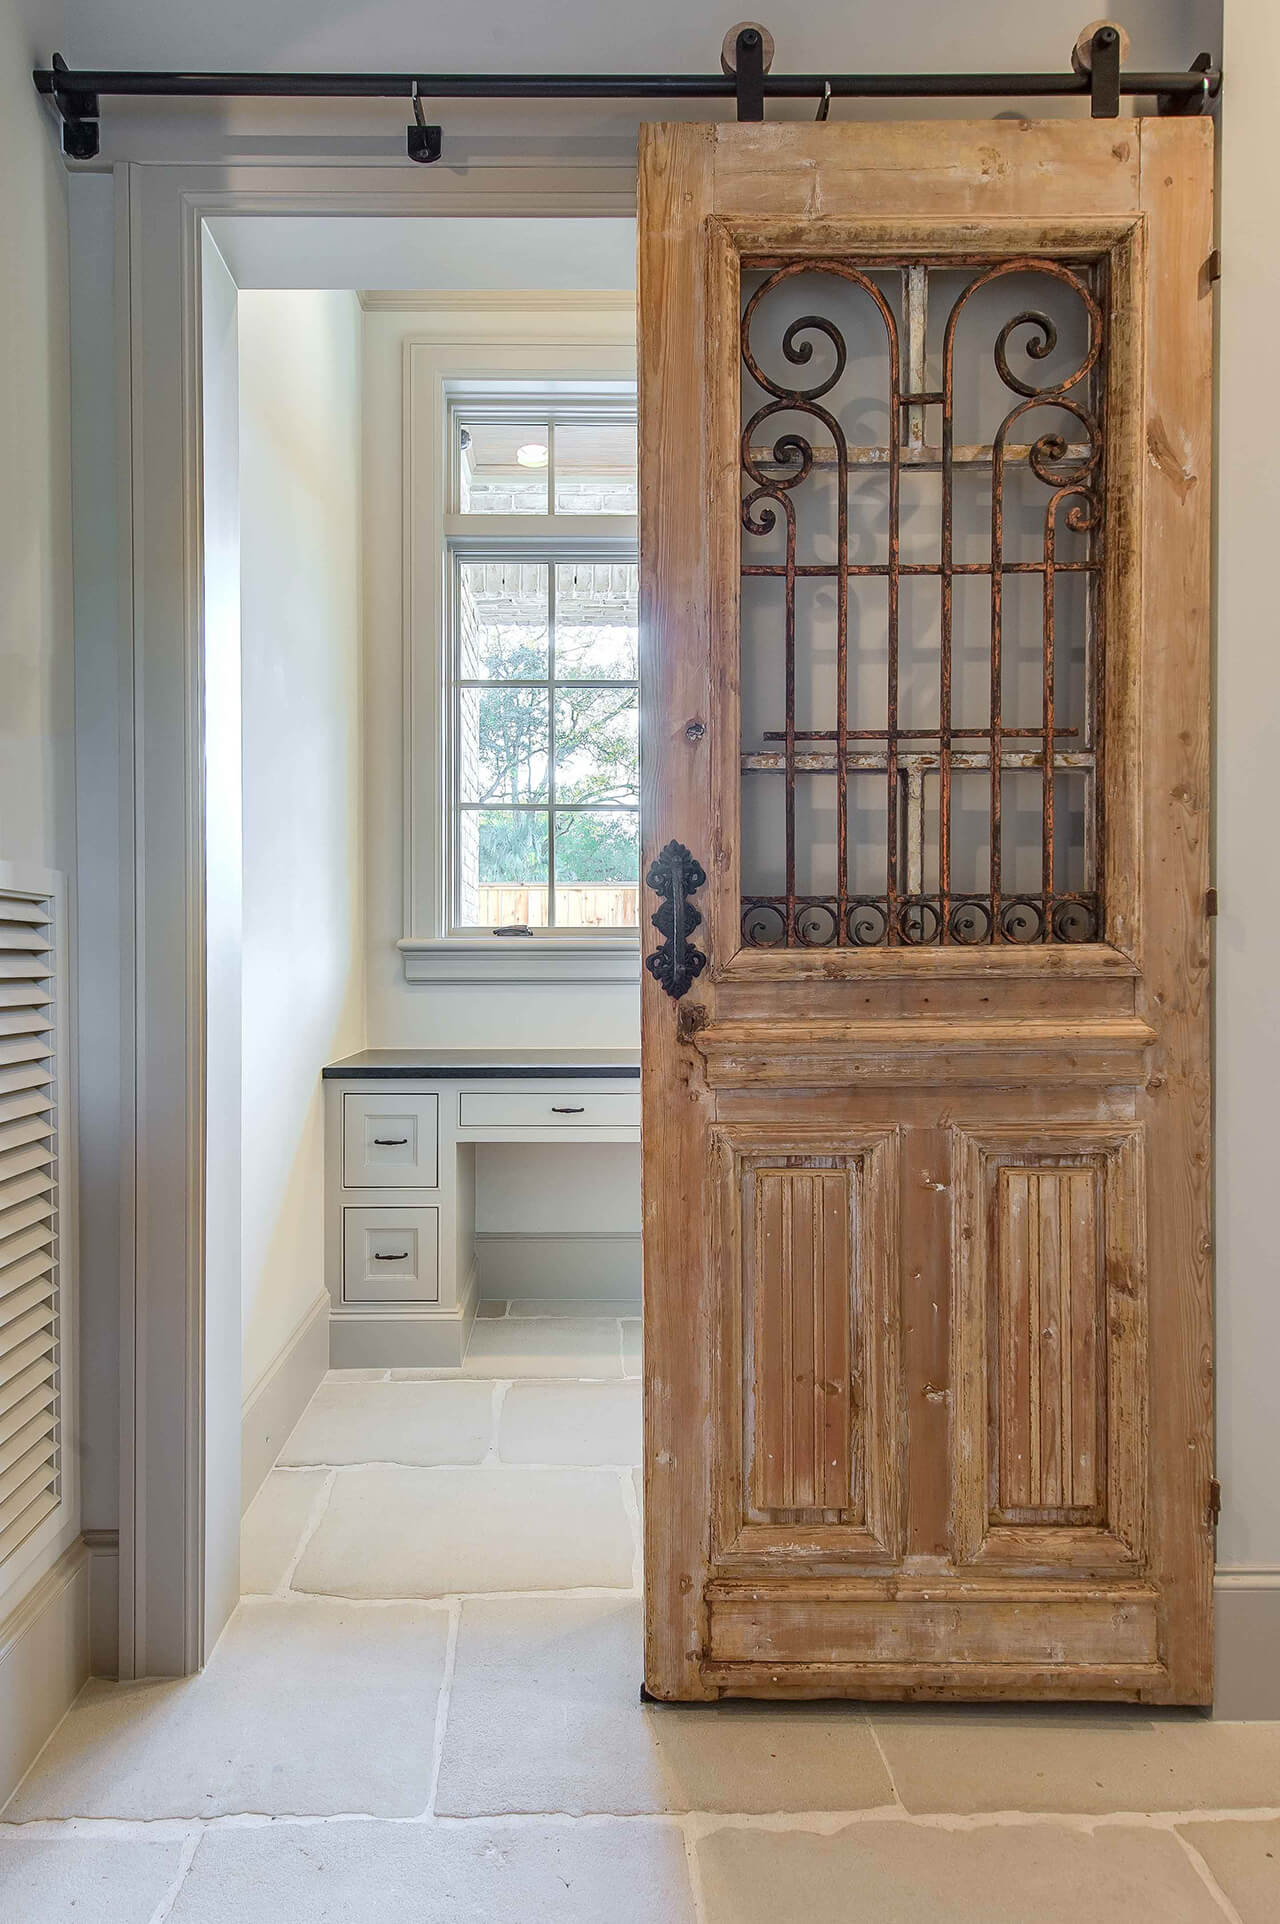 New takes on old doors 21 ideas how to repurpose old Old home interior pictures value